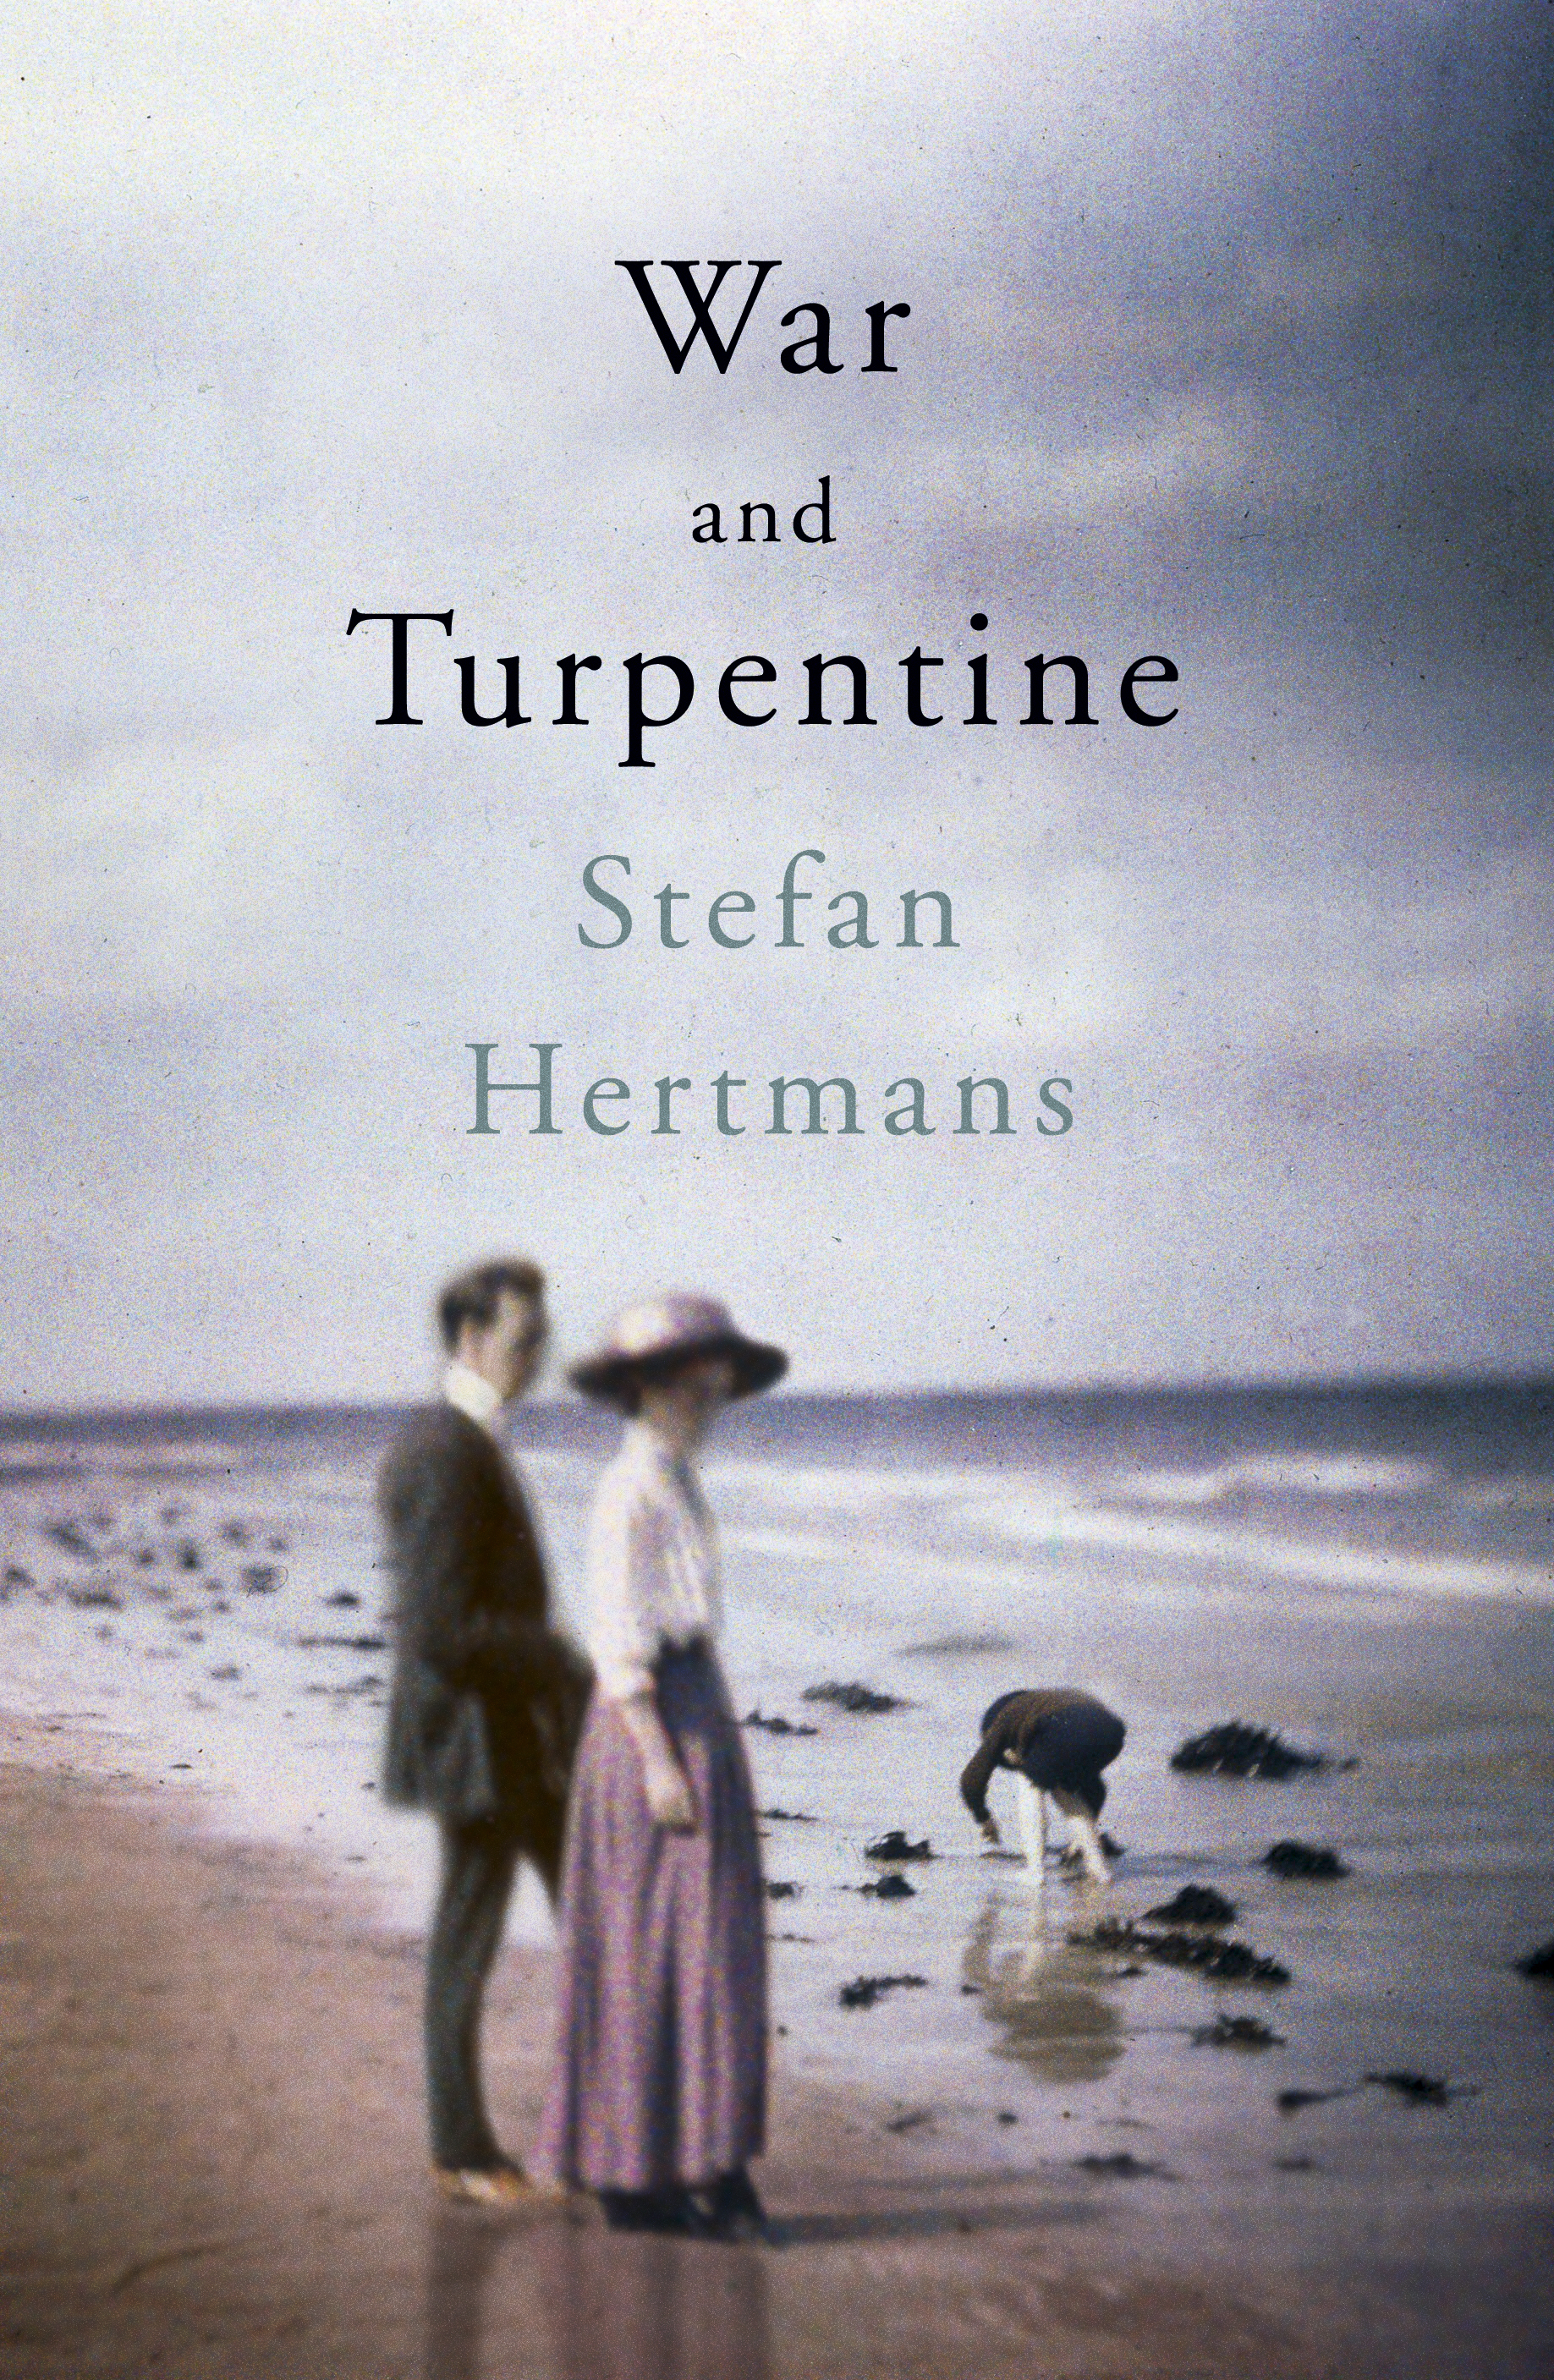 16.stefan hertmans war and turpentine